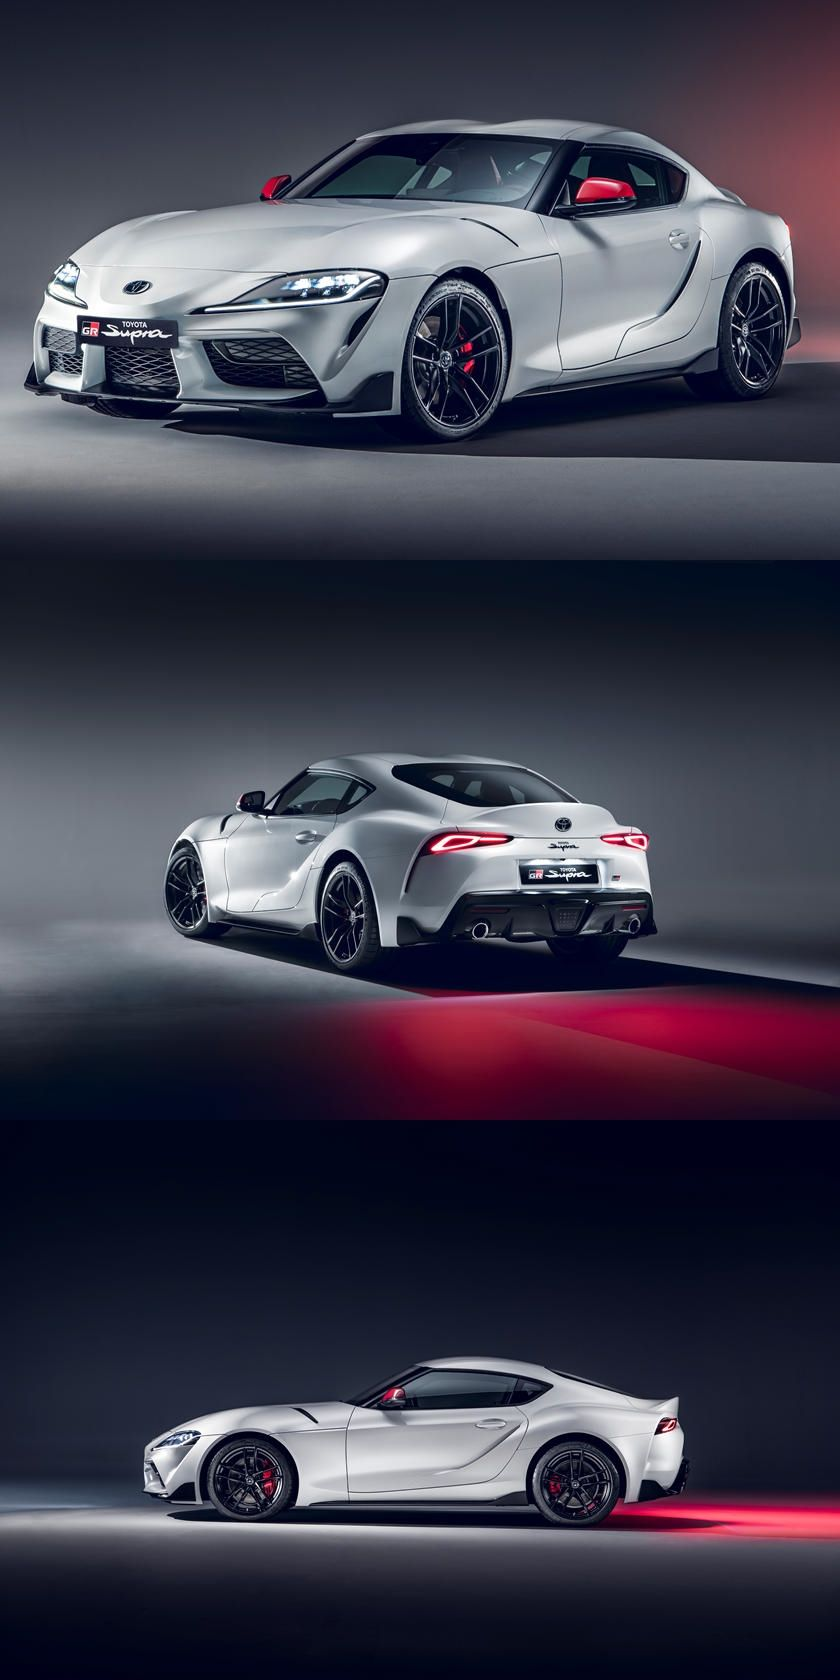 2020 Toyota Gr Supra 2 0 Liter Turbo Four Arrives With 258 Hp The Toyota Gr Supra Just Got More Accessible In 2020 Toyota Cars Toyota Japanese Sports Cars